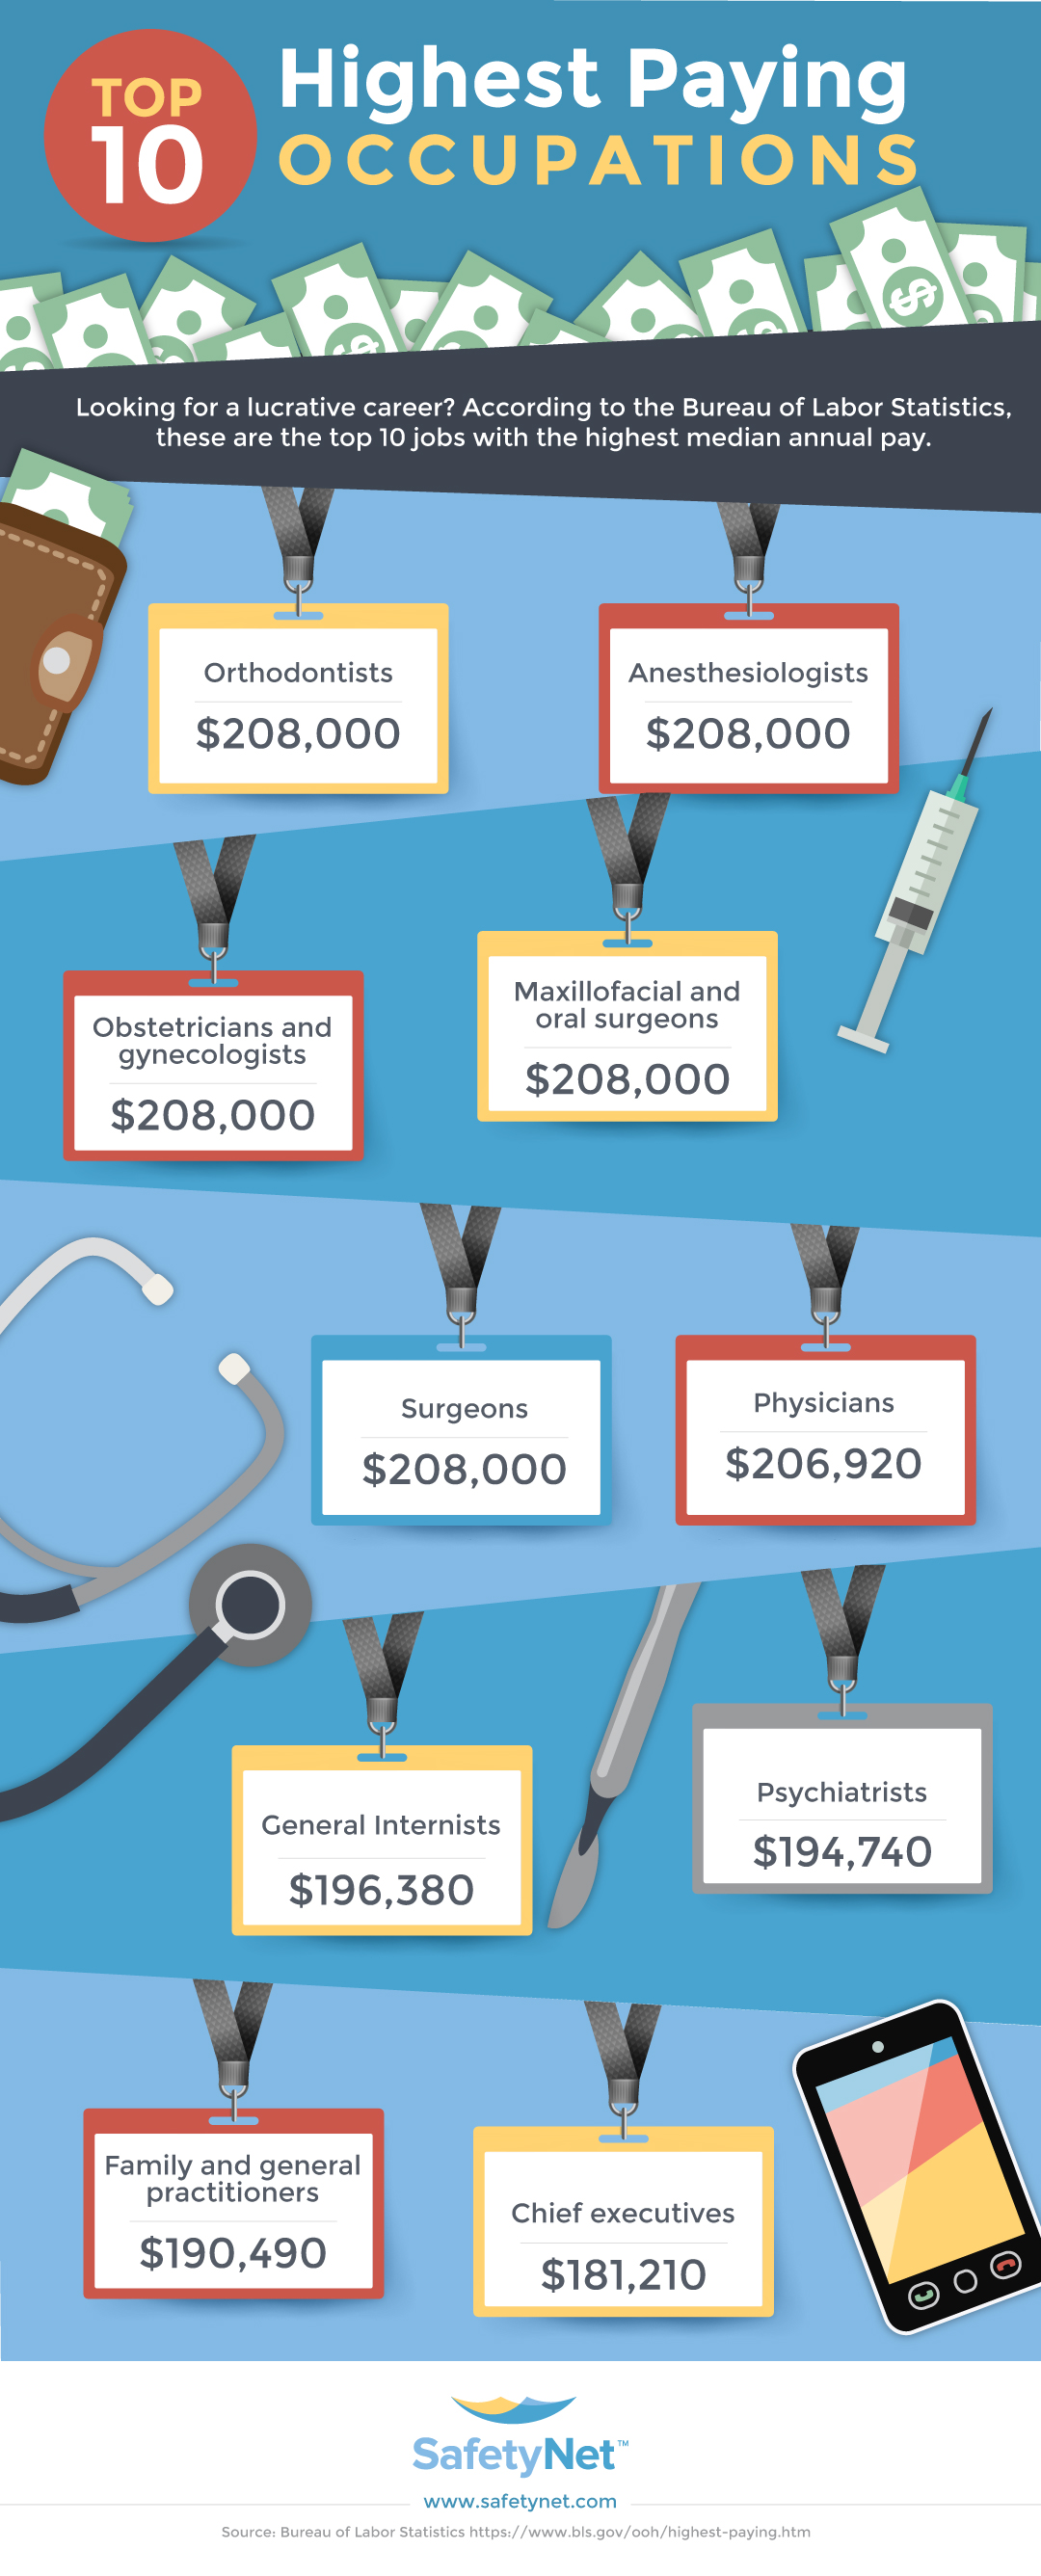 Top 10 Occupations Based on Median Annual Pay - Infographic